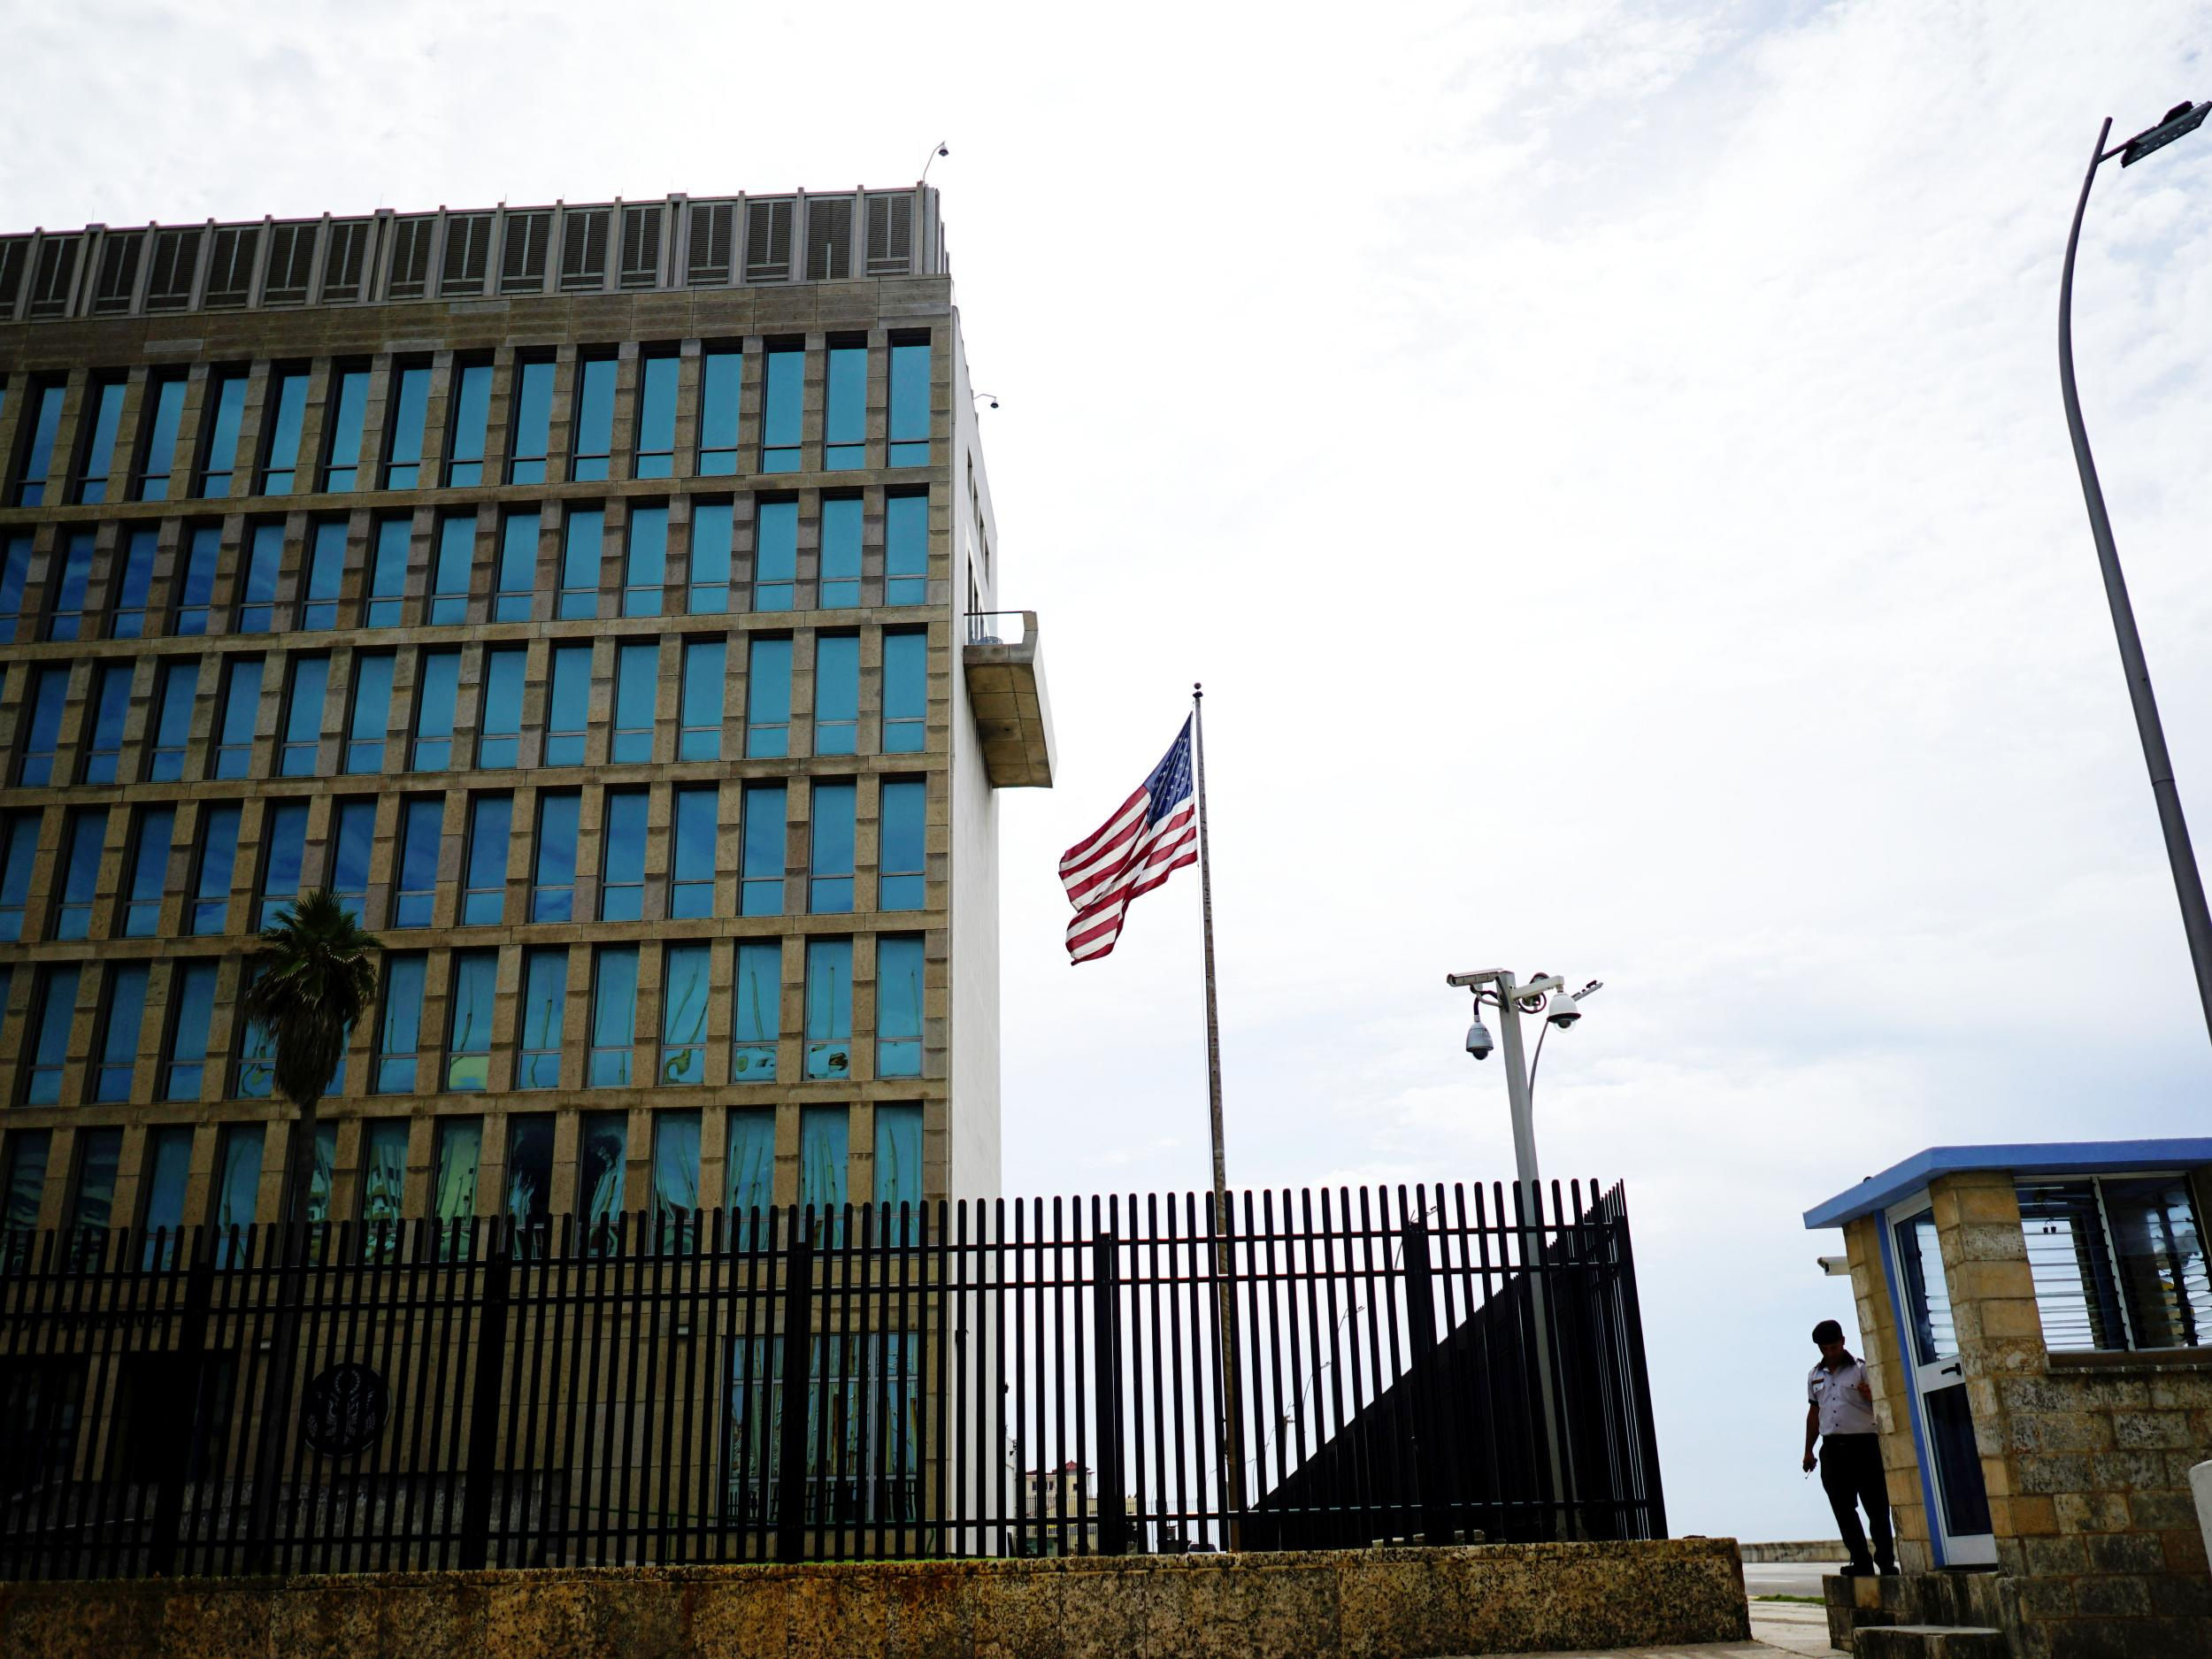 US officials frustrated by lack of answers on mysterious 'health attacks' in Cuba